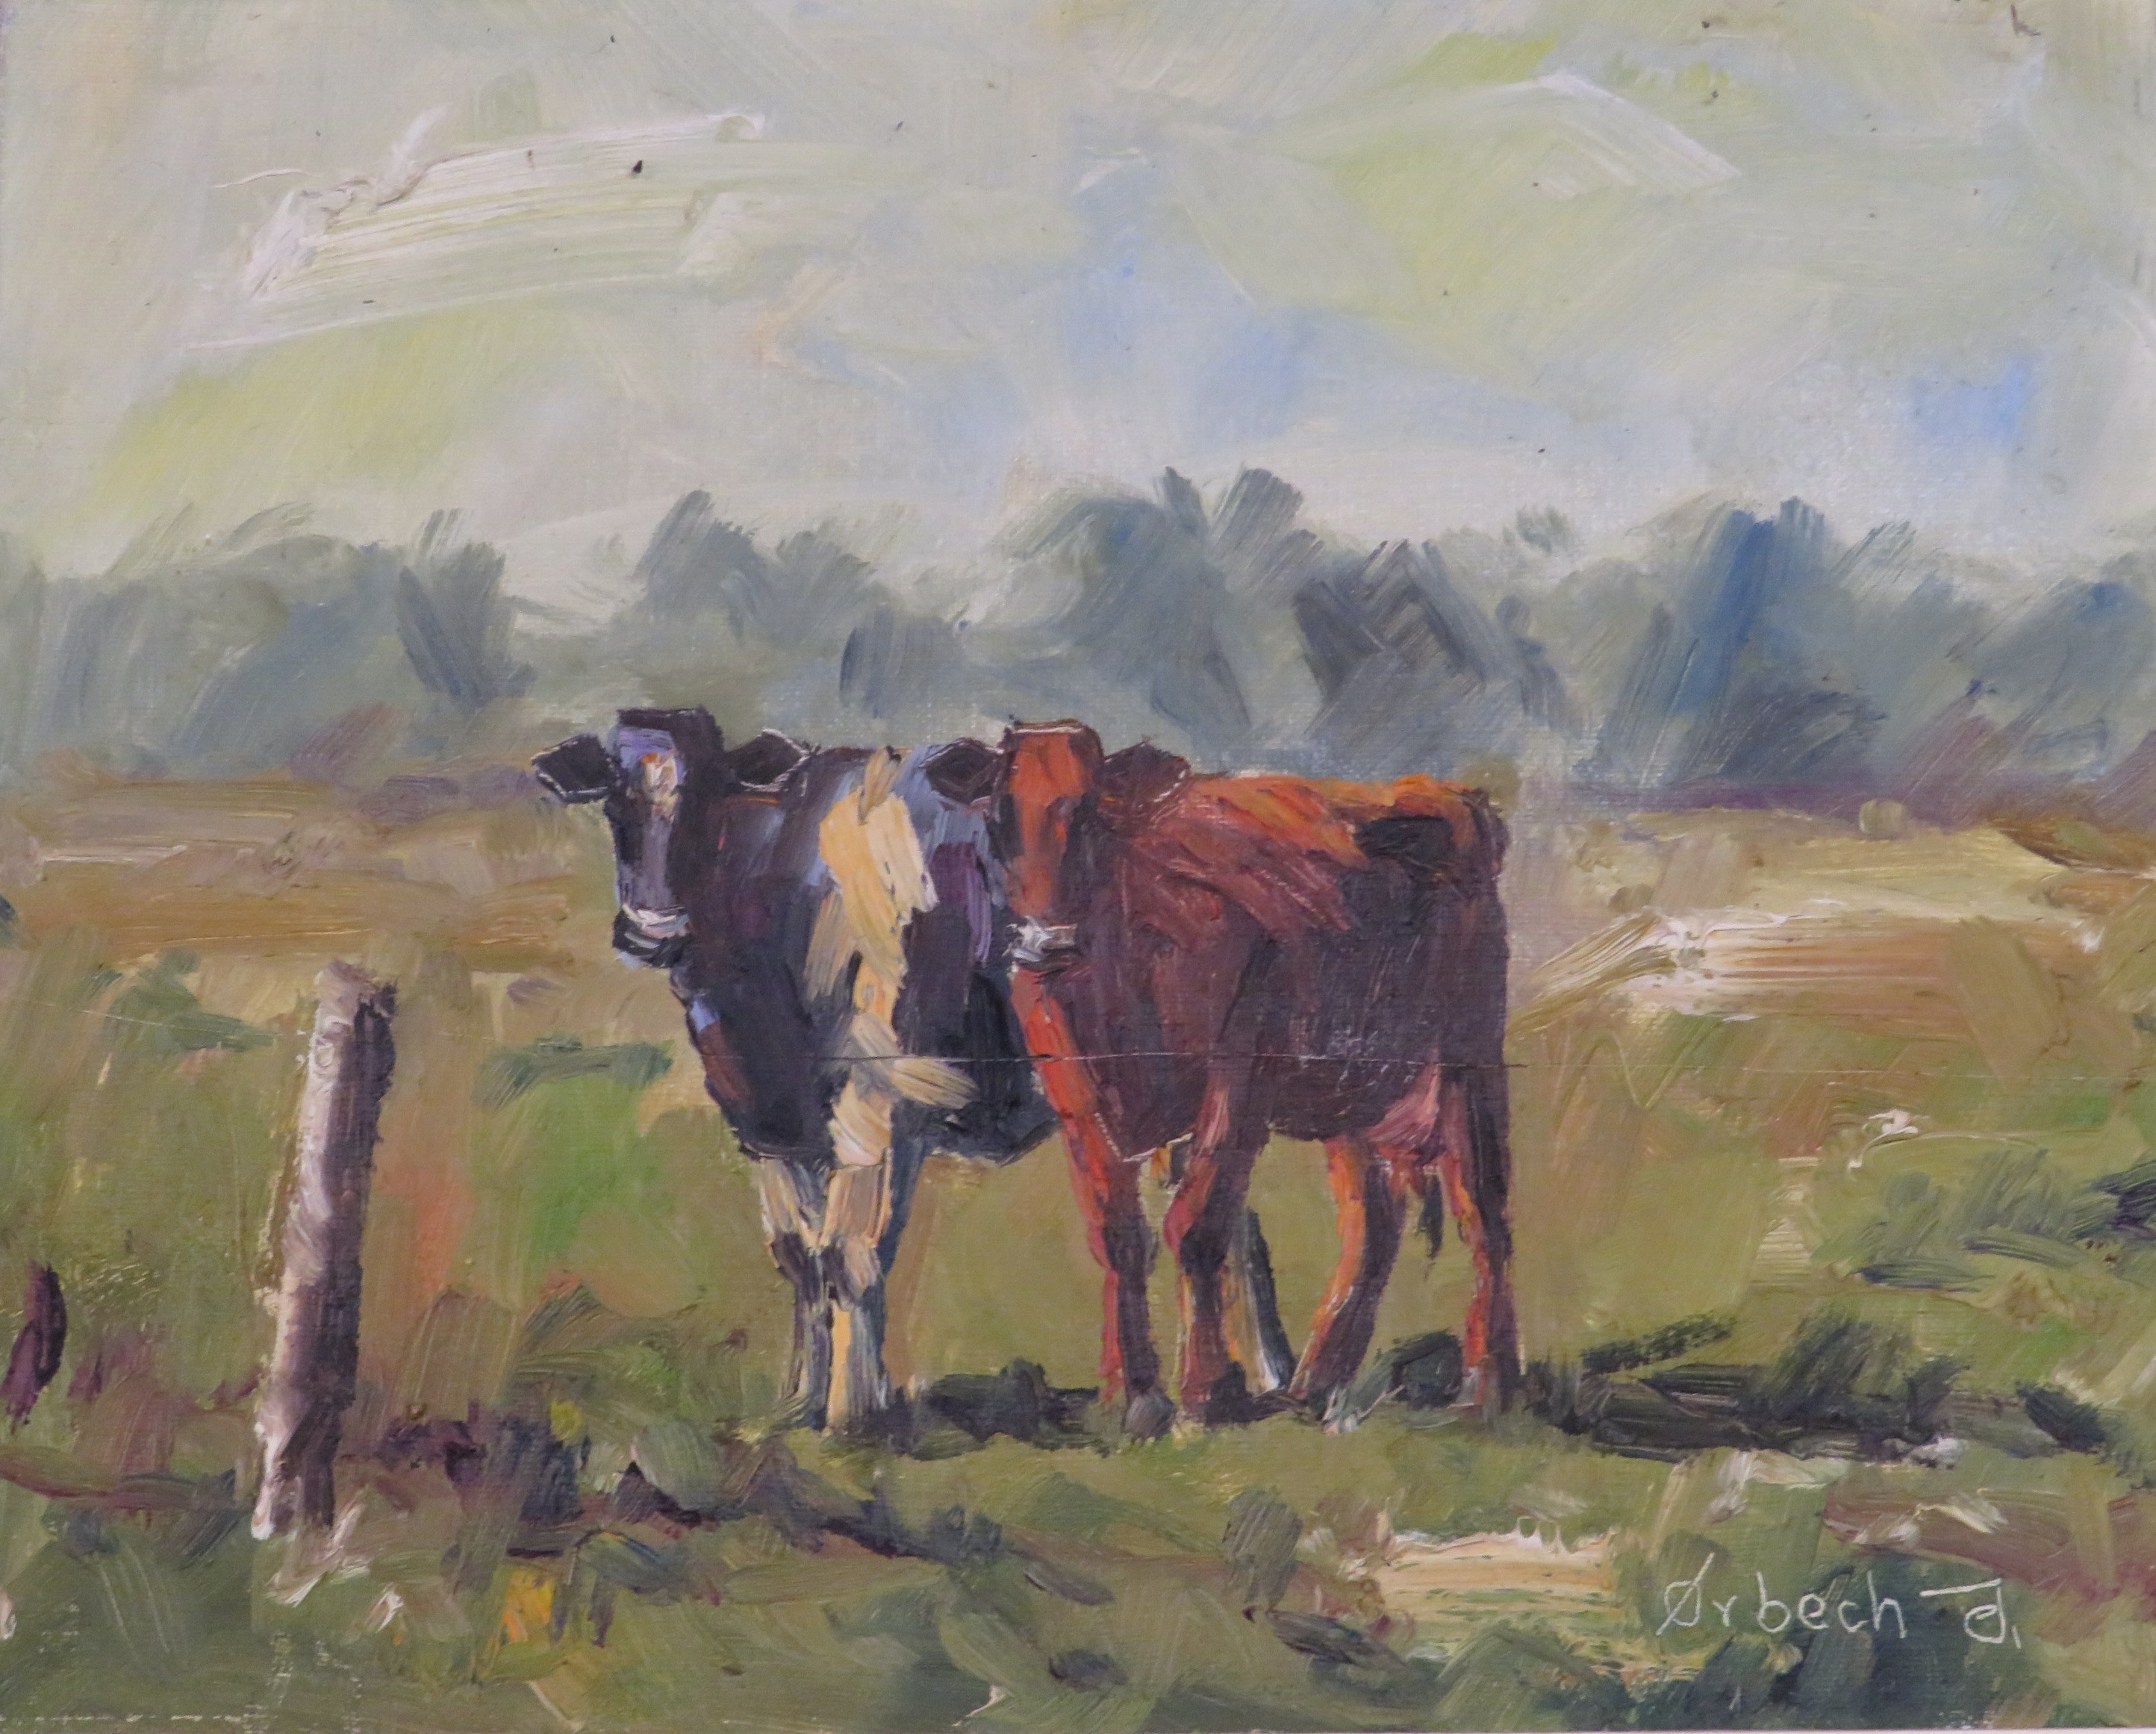 Lot 32 - Two cows in landscape, oil on canvas, signed Orbech J (?) lower right, (23.5cm x 29cm), in a gilt